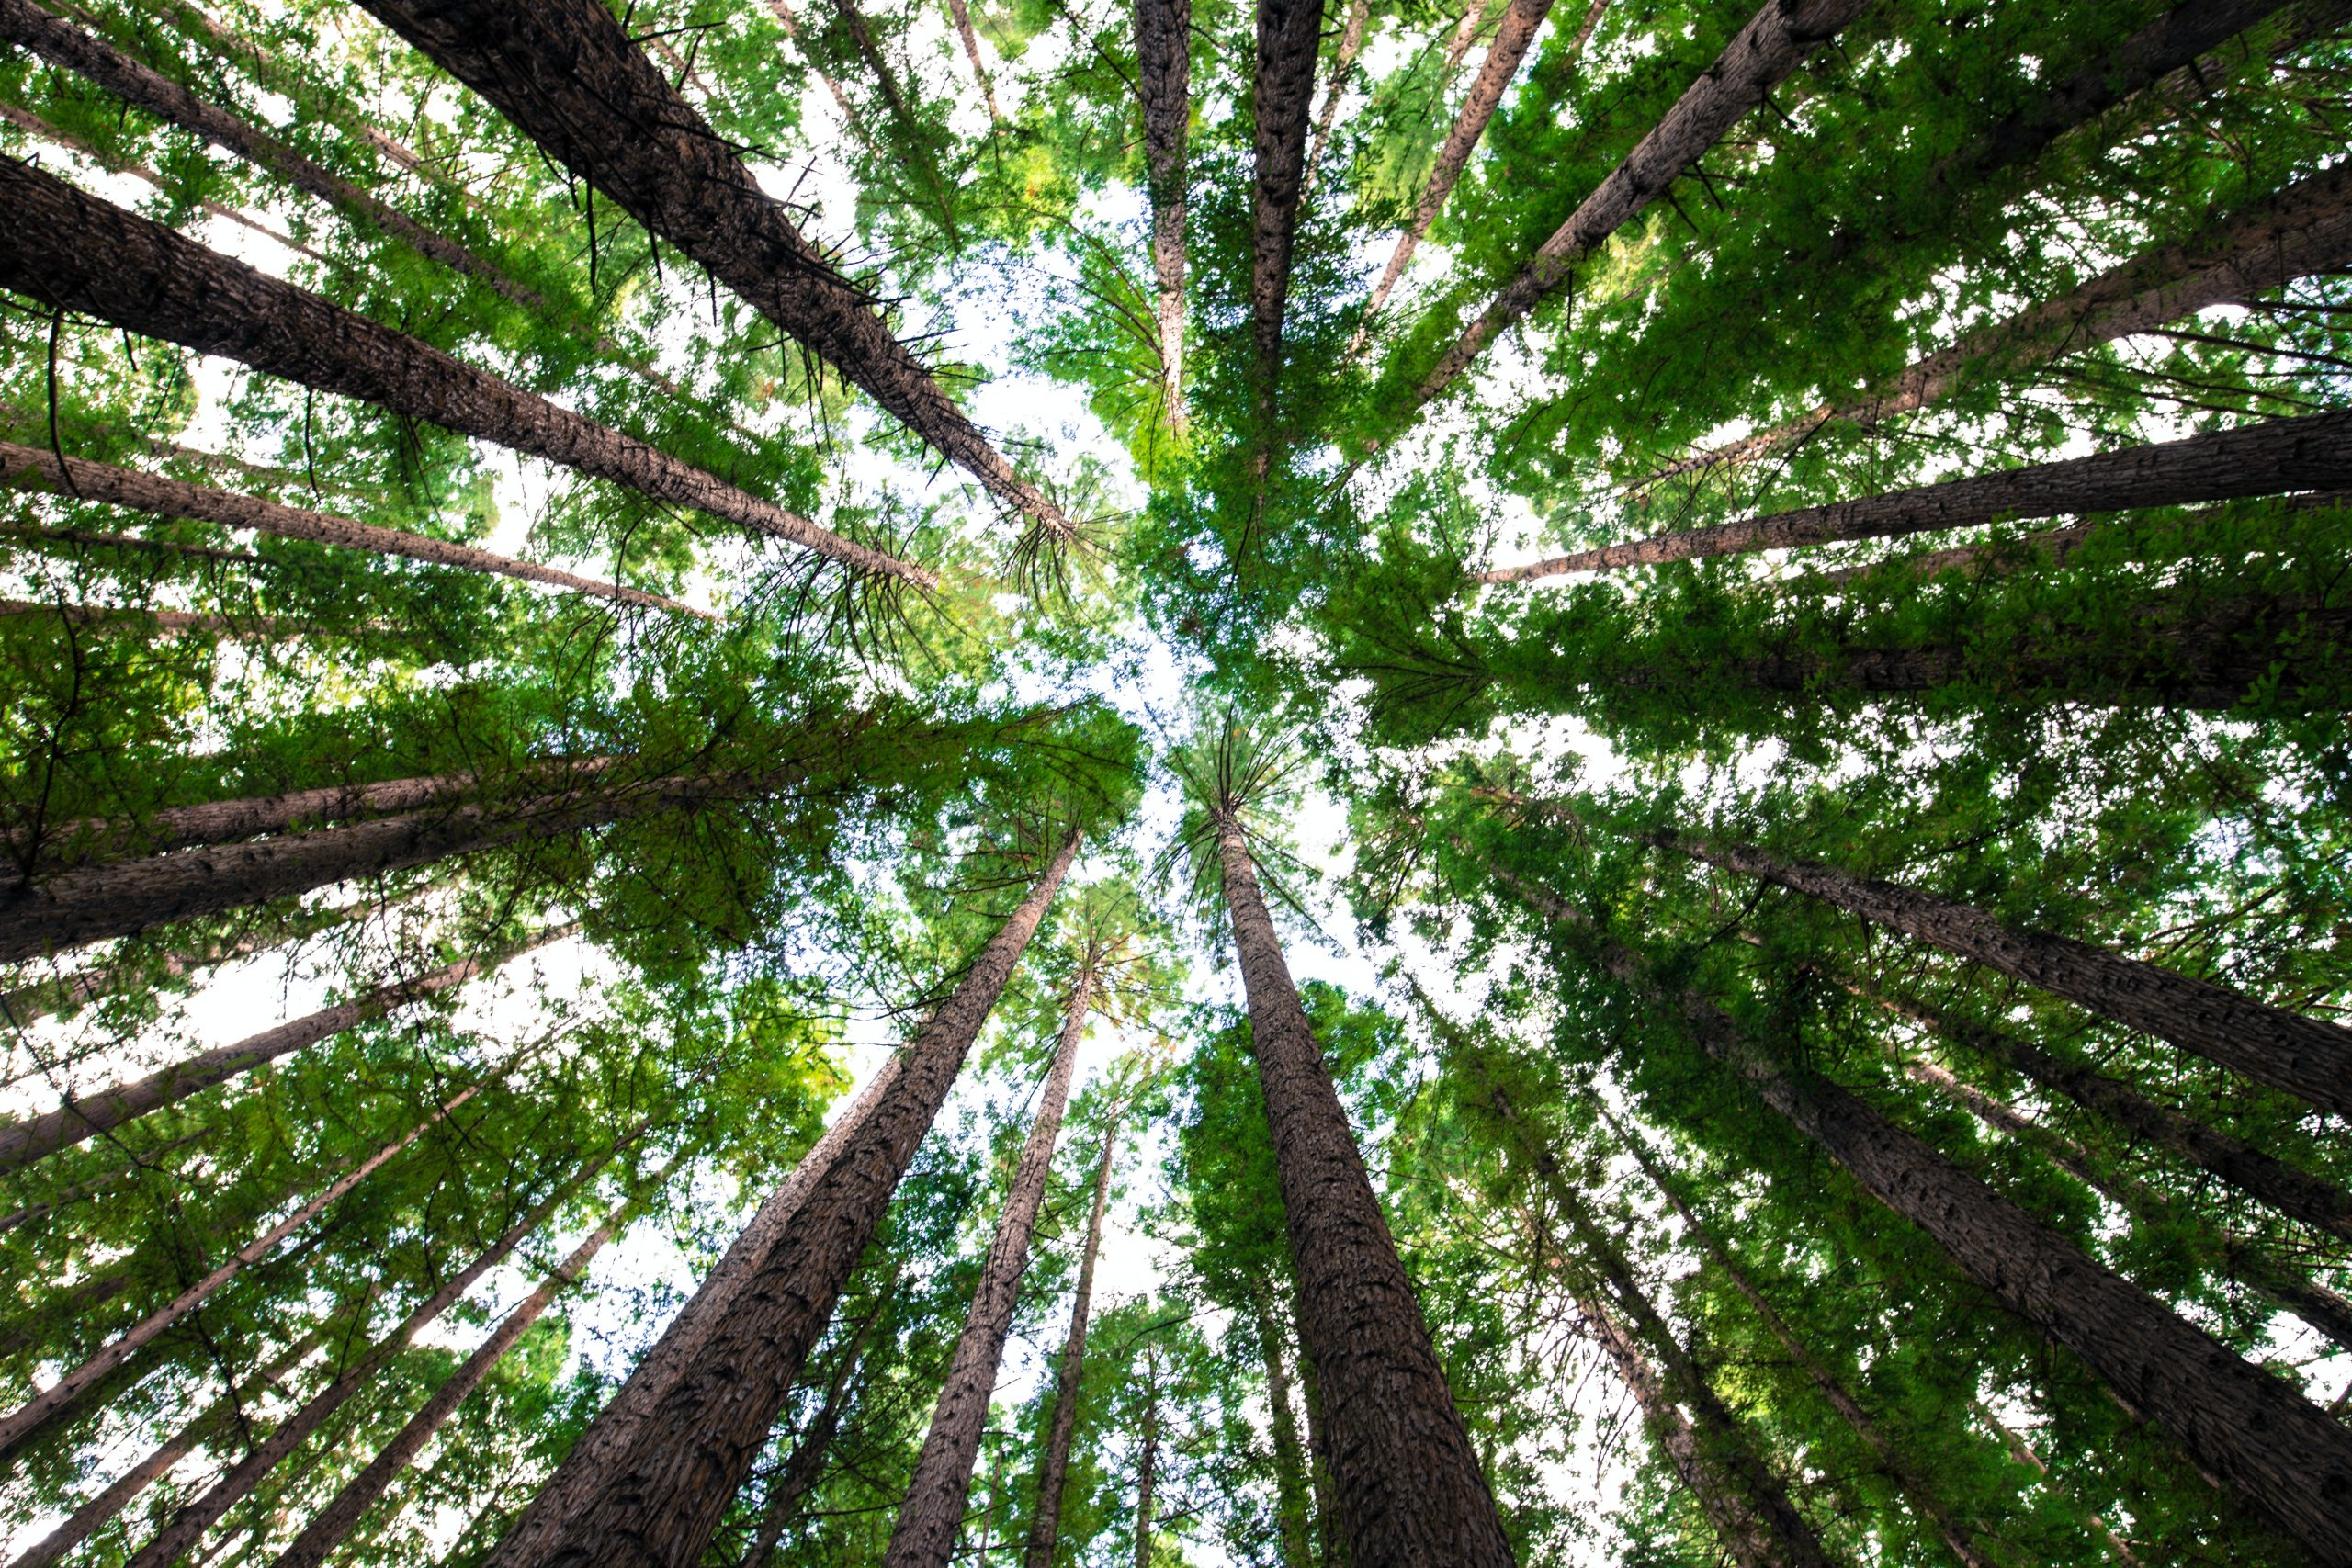 Building Greener Cities With Tree Surveys: SPR Interviews Davey Resource Group